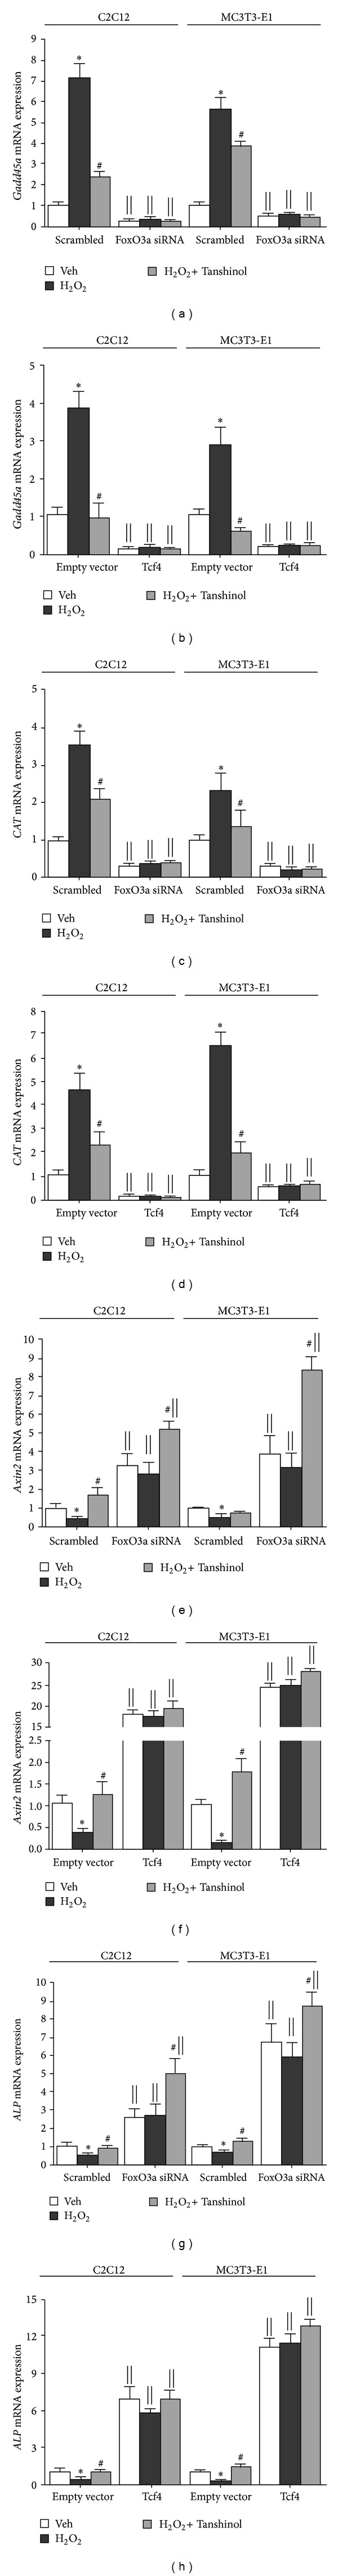 Effects of Tanshinol on targets genes of Wnt/Tcf and FoxO3a in C2C12 cells and MC3T3-E1 cells treated with FoxO3a siRNA, or with Tcf4 overexpression under oxidative stress. ((a), (c), (e), and (g)) C2C12 cells or MC3T3-E1 cells were transfected transiently with either the FoxO3a siRNA or the scrambled RNA control in the presence or absence of vehicle, H 2 O 2 , or Tashinol for 24 hours. The relative mRNA expression levels of Gadd45a , CAT , Axin2 , and ALP genes in control cells (Scrambled) and in the FoxO3a-knockdown (FoxO3a siRNA) cells were assessed by quantitative RT-PCR assay. ((b), (d), (f), and (h)) C2C12 cells or MC3T3-E1 cells were transfected transiently with either the overexpression plasmid of Tcf4 or the empty vector control. The following procedure was executed as described in (a), (c), (e), and (g). mRNA values were normalized to GAPDH mRNA. Bars represent mean ± SME of three independent experiments. * P